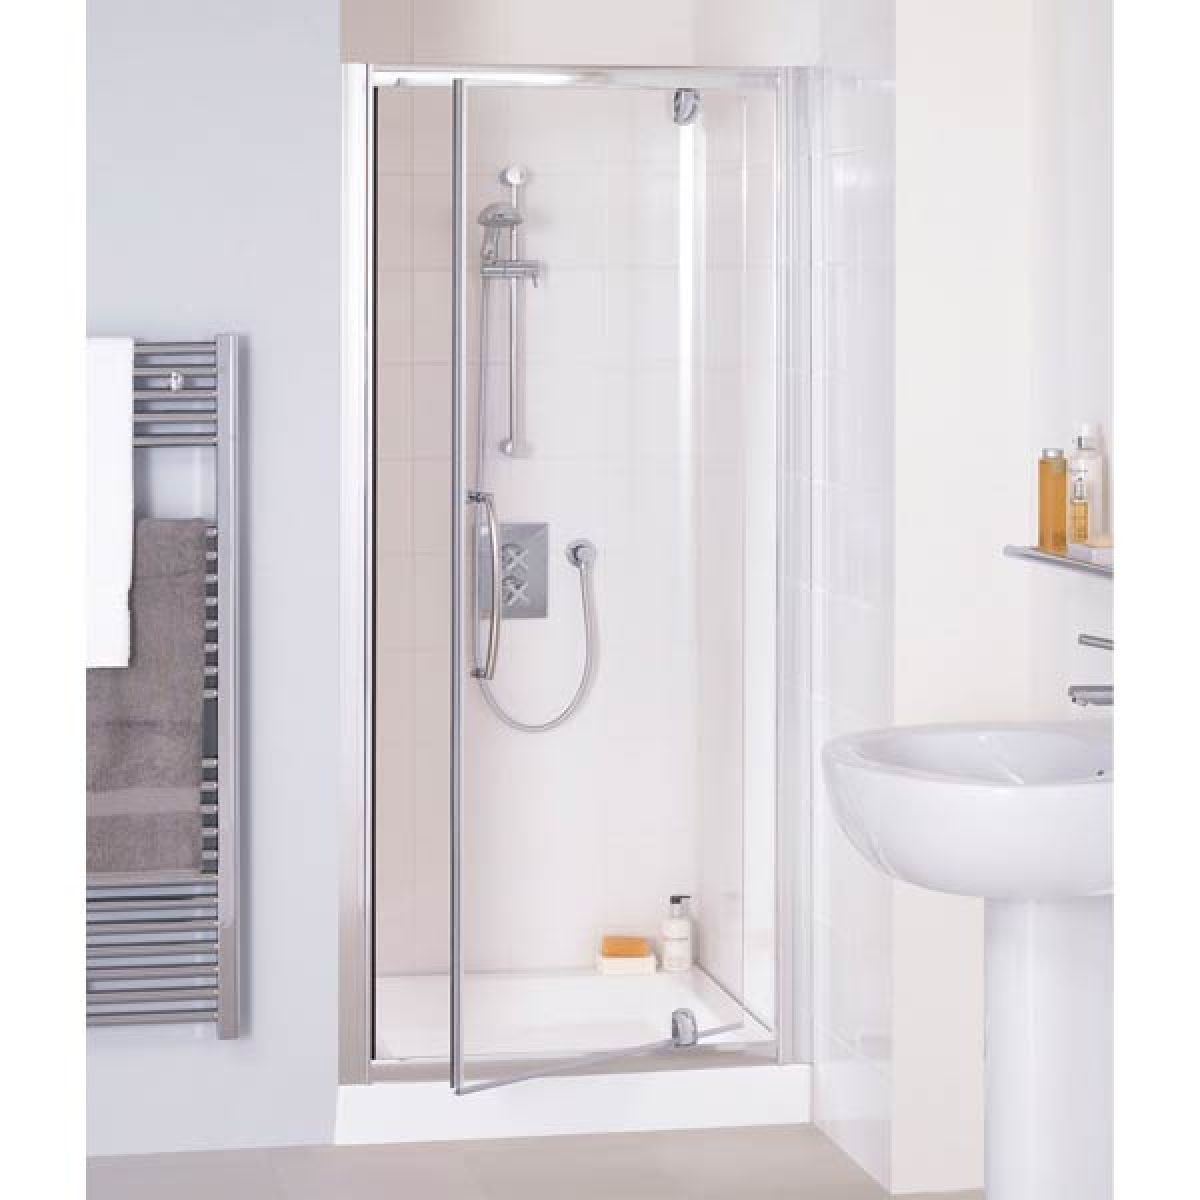 Lakes White Semi-Frameless Pivot Shower Door with Optional Side Panel